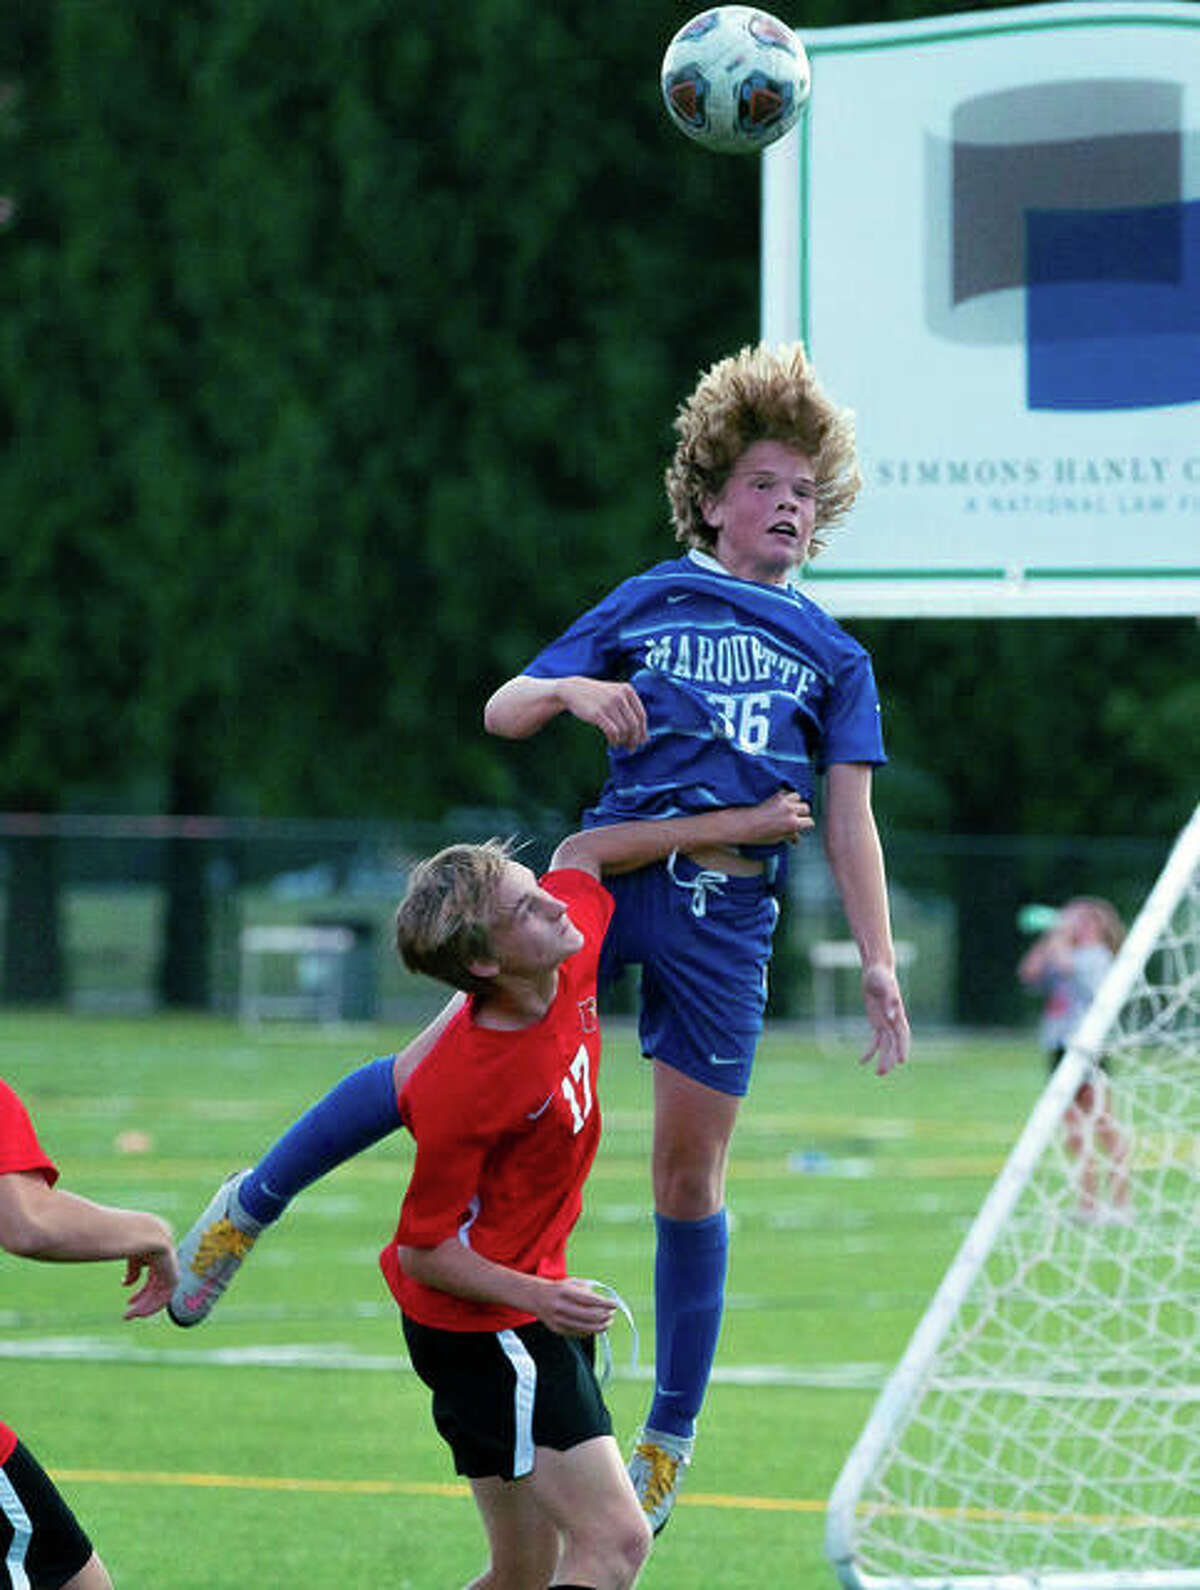 Marquette's Quinn Copeland goes high for a a header during Monday night's game at Gordon Moore Park.